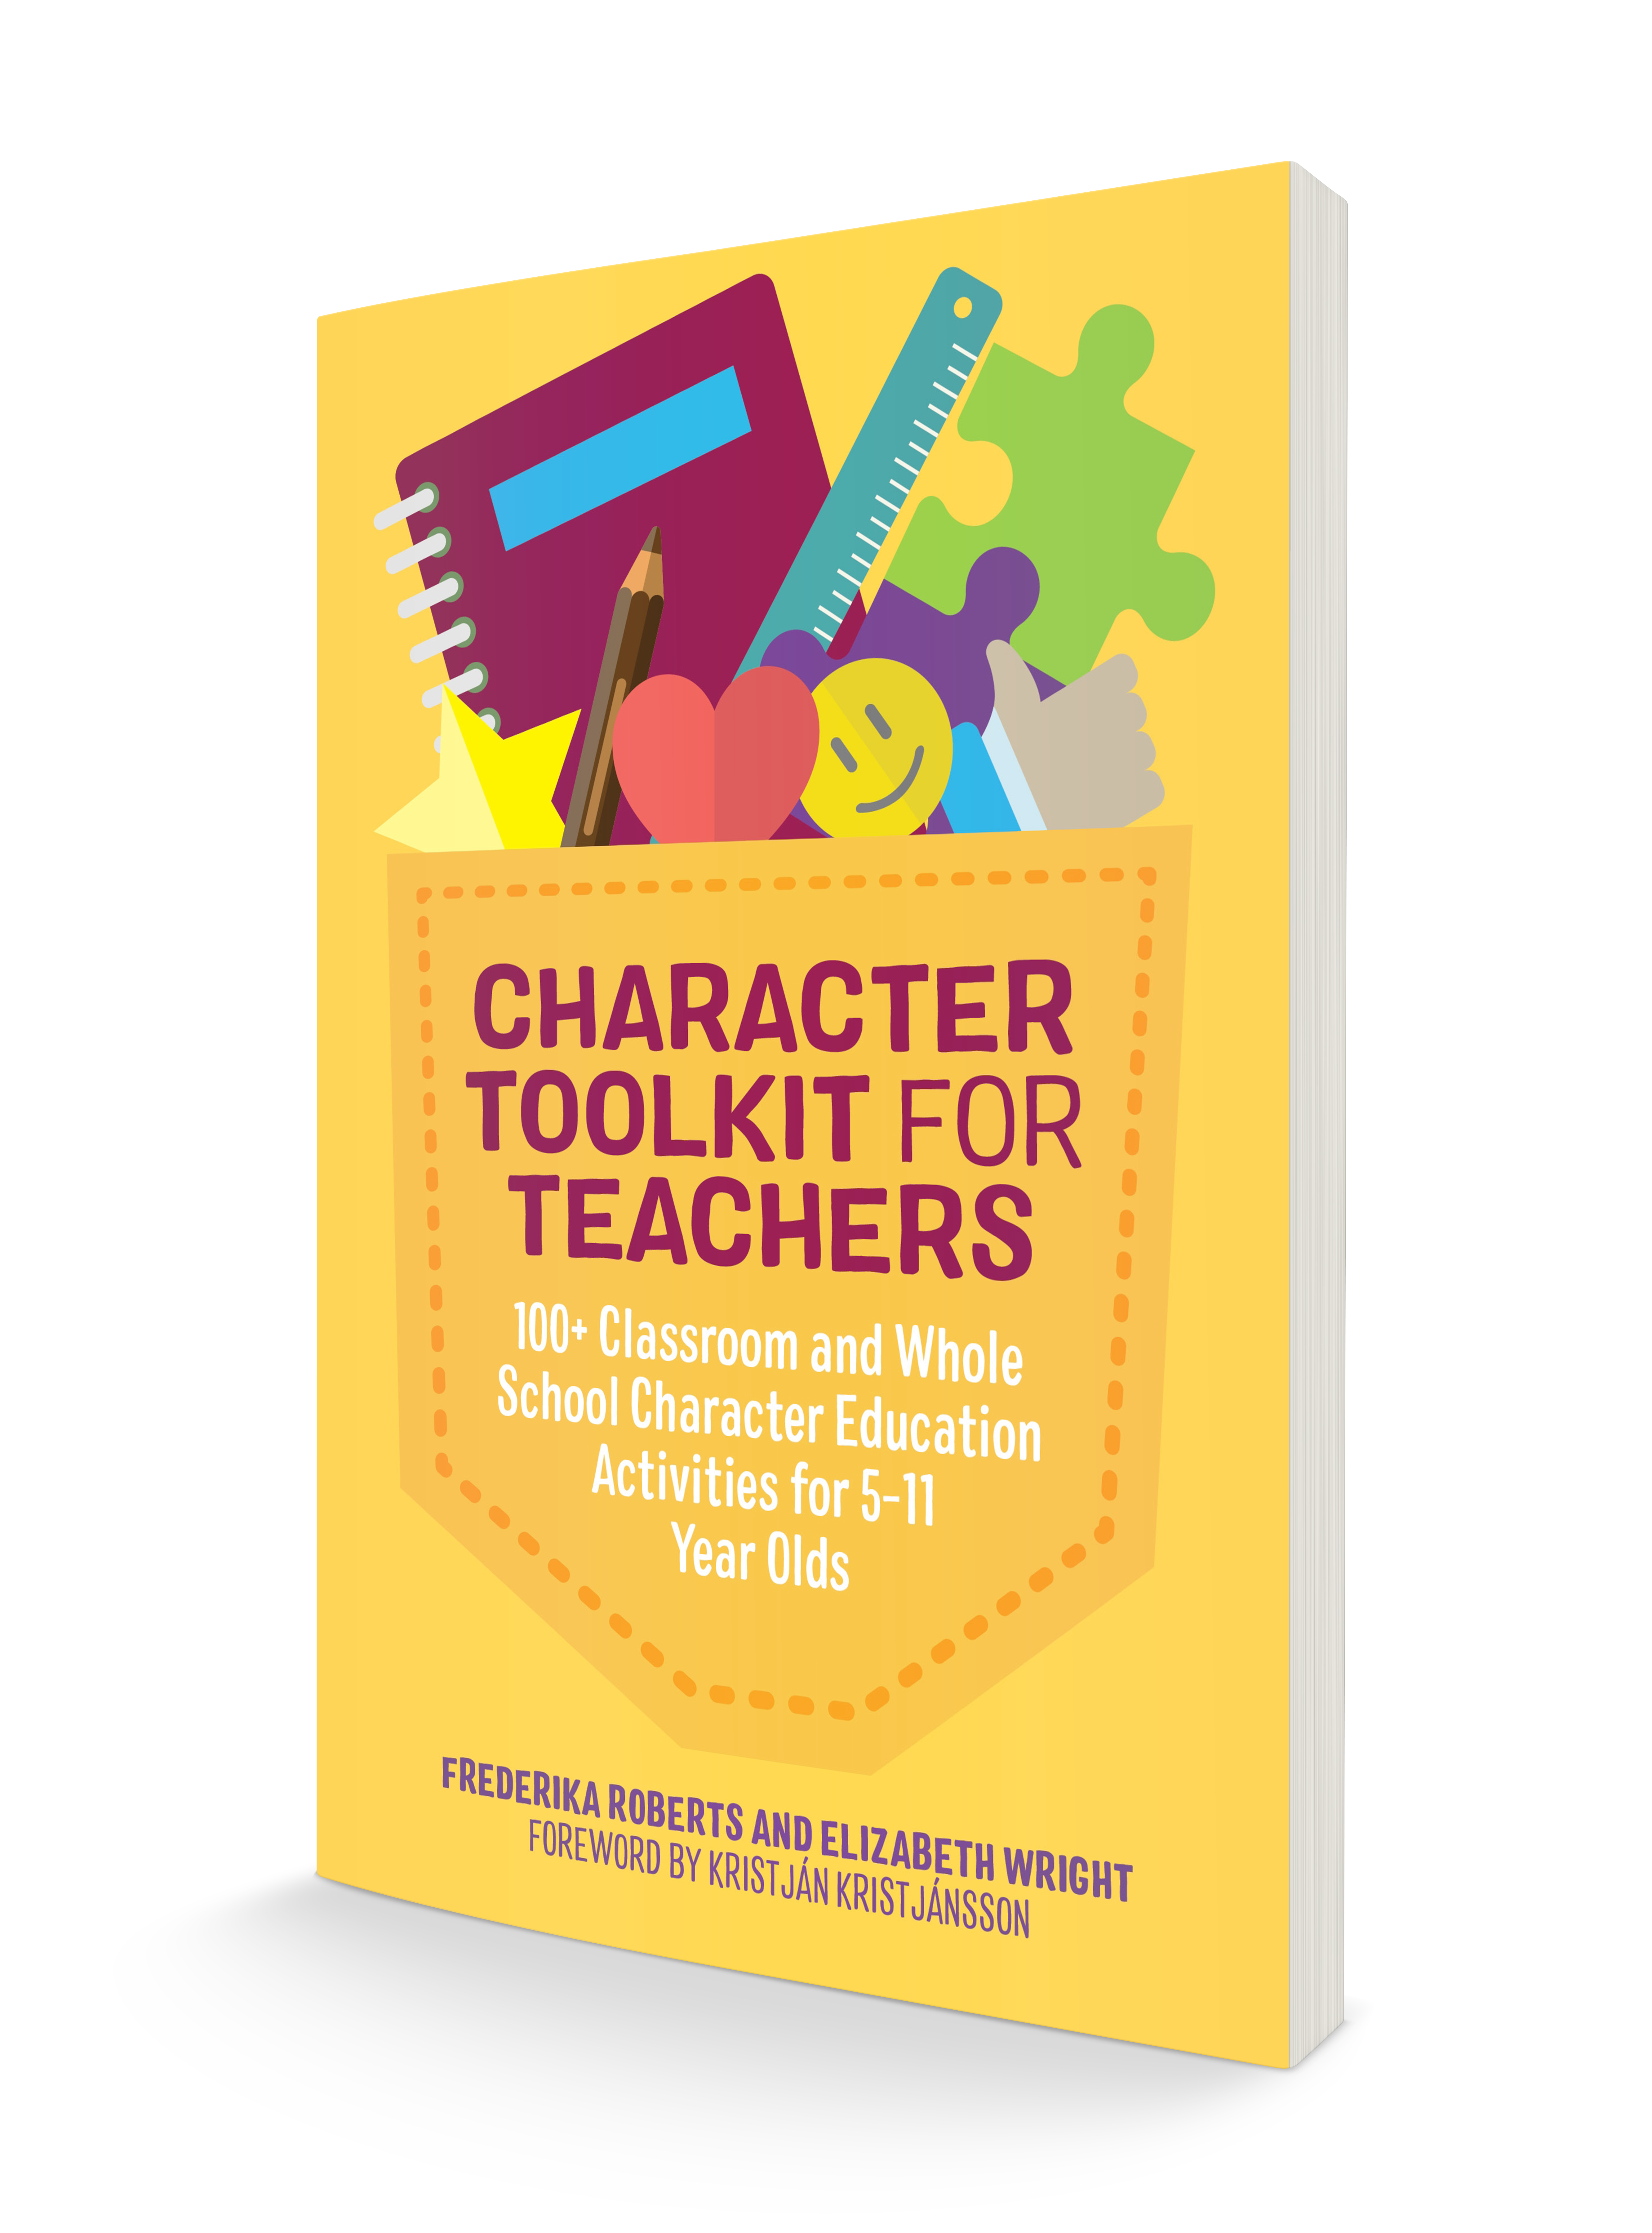 Character Toolkit for Teachers book cover 3D